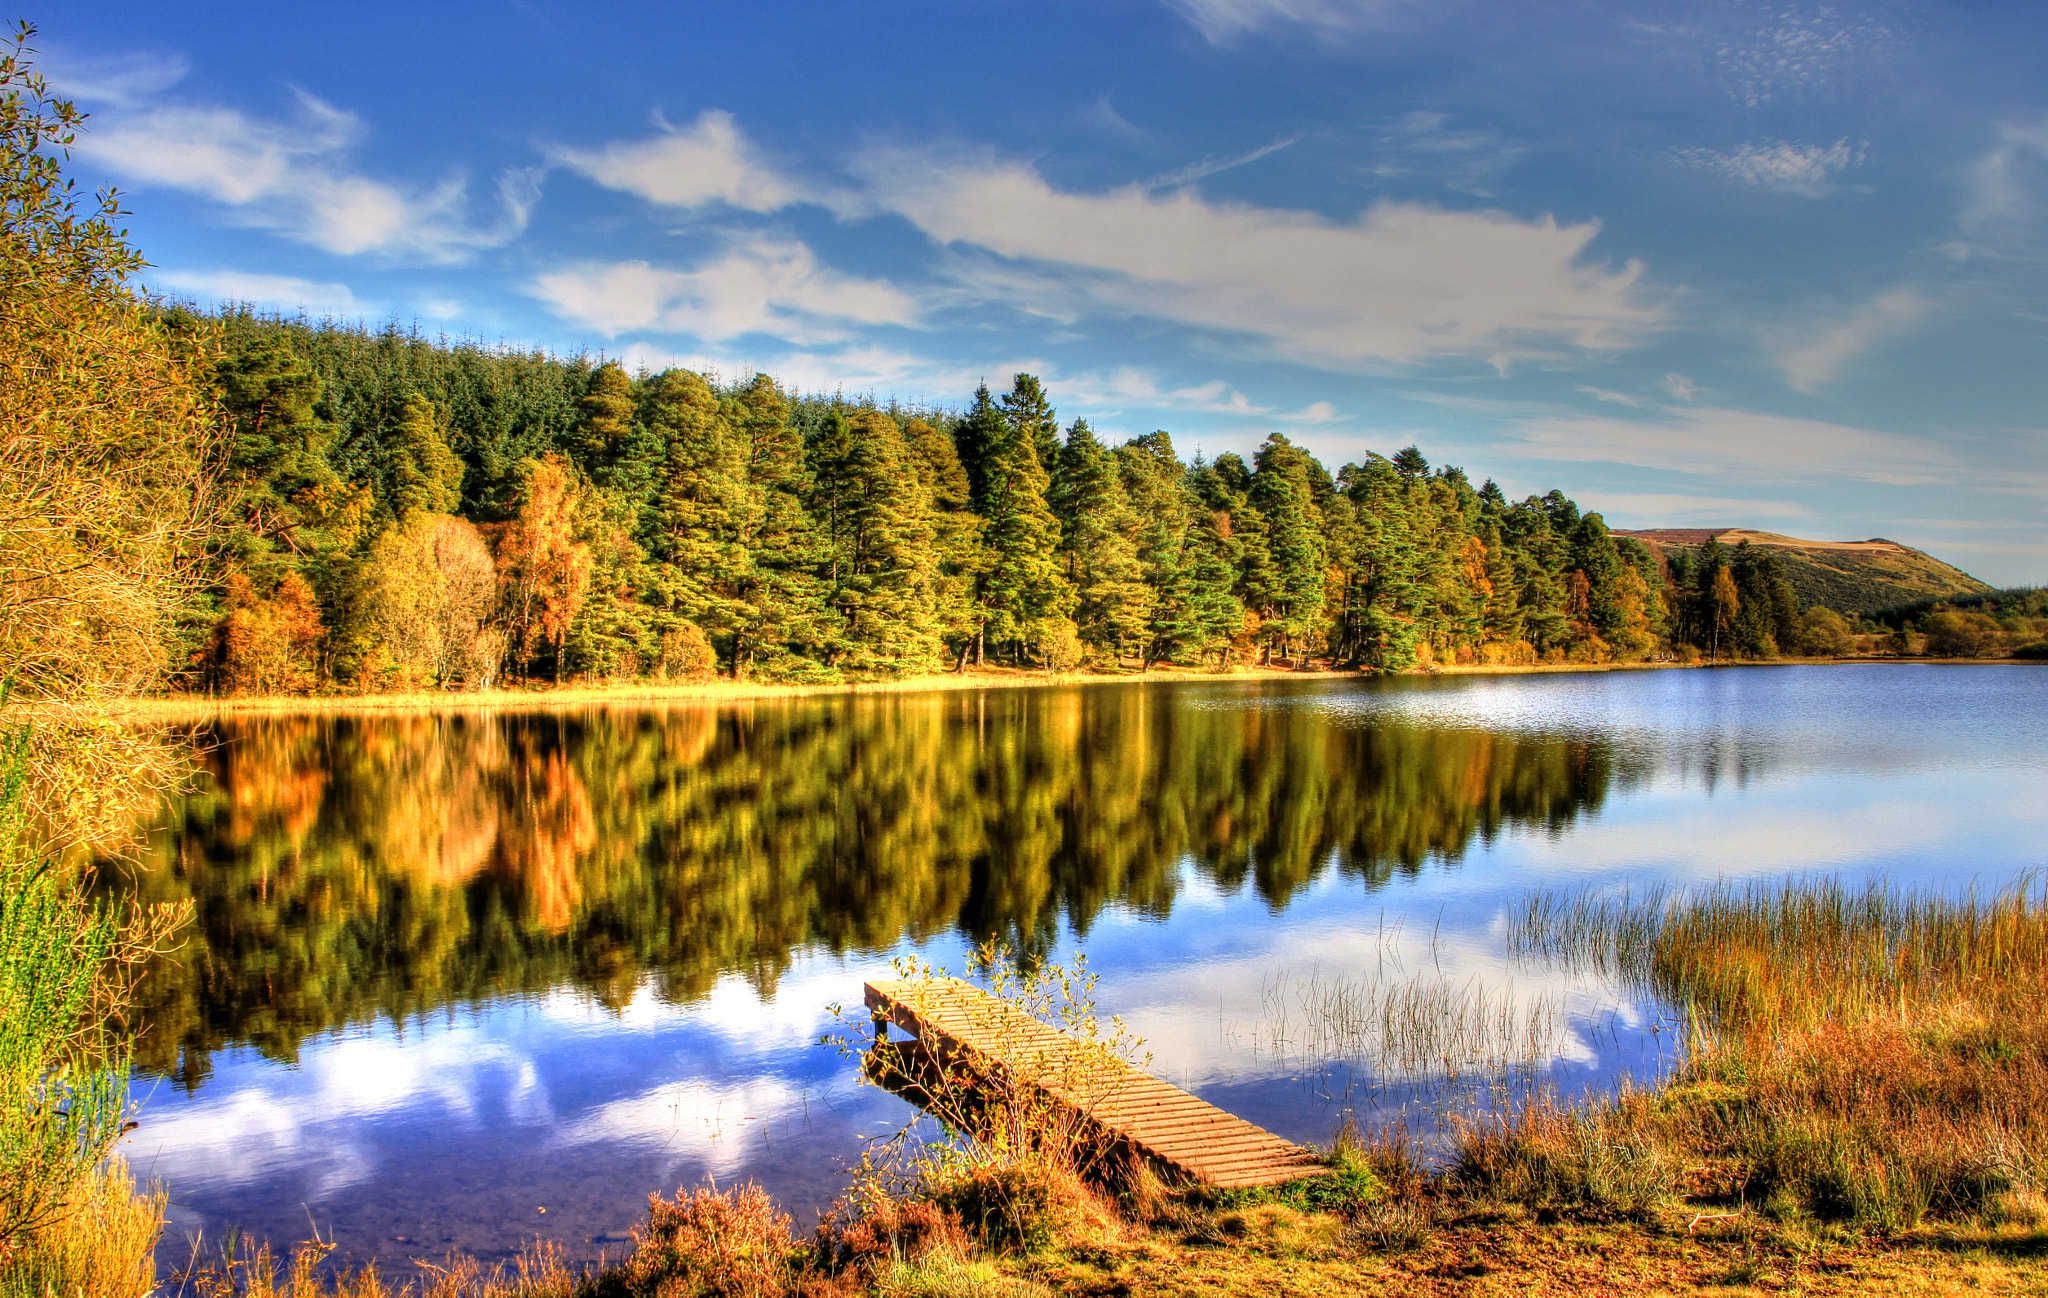 Photograph Lairds Loch In Autumn 2 by Hilda Murray on 500px